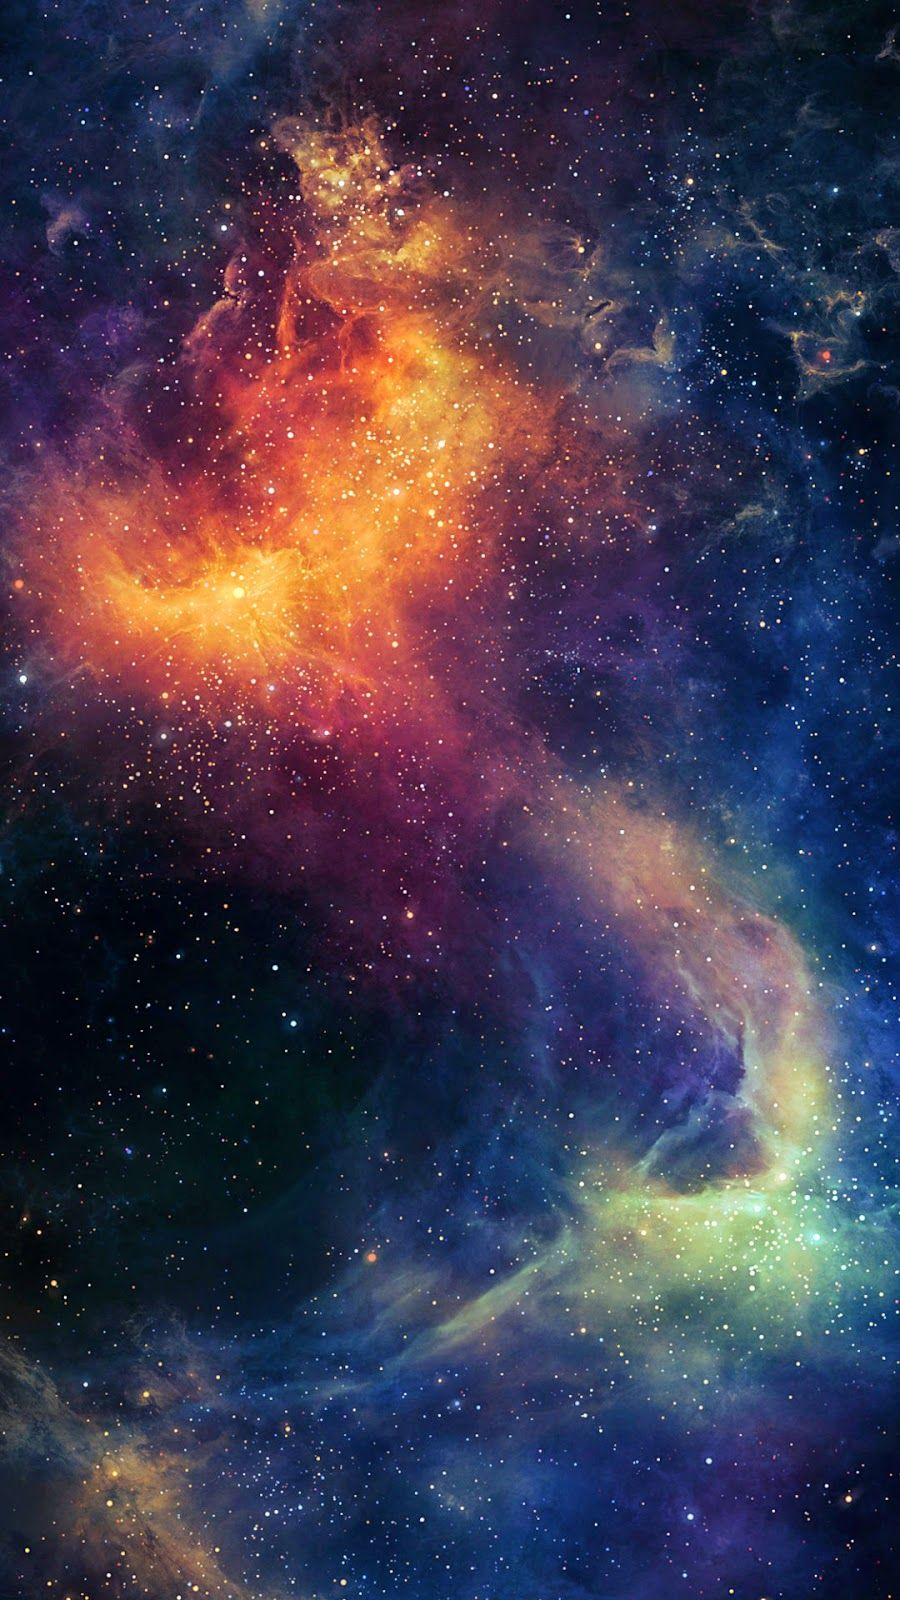 Be Linspired Free Iphone 6 Wallpaper Backgrounds Space Iphone Wallpaper Wallpaper Space Galaxy Wallpaper